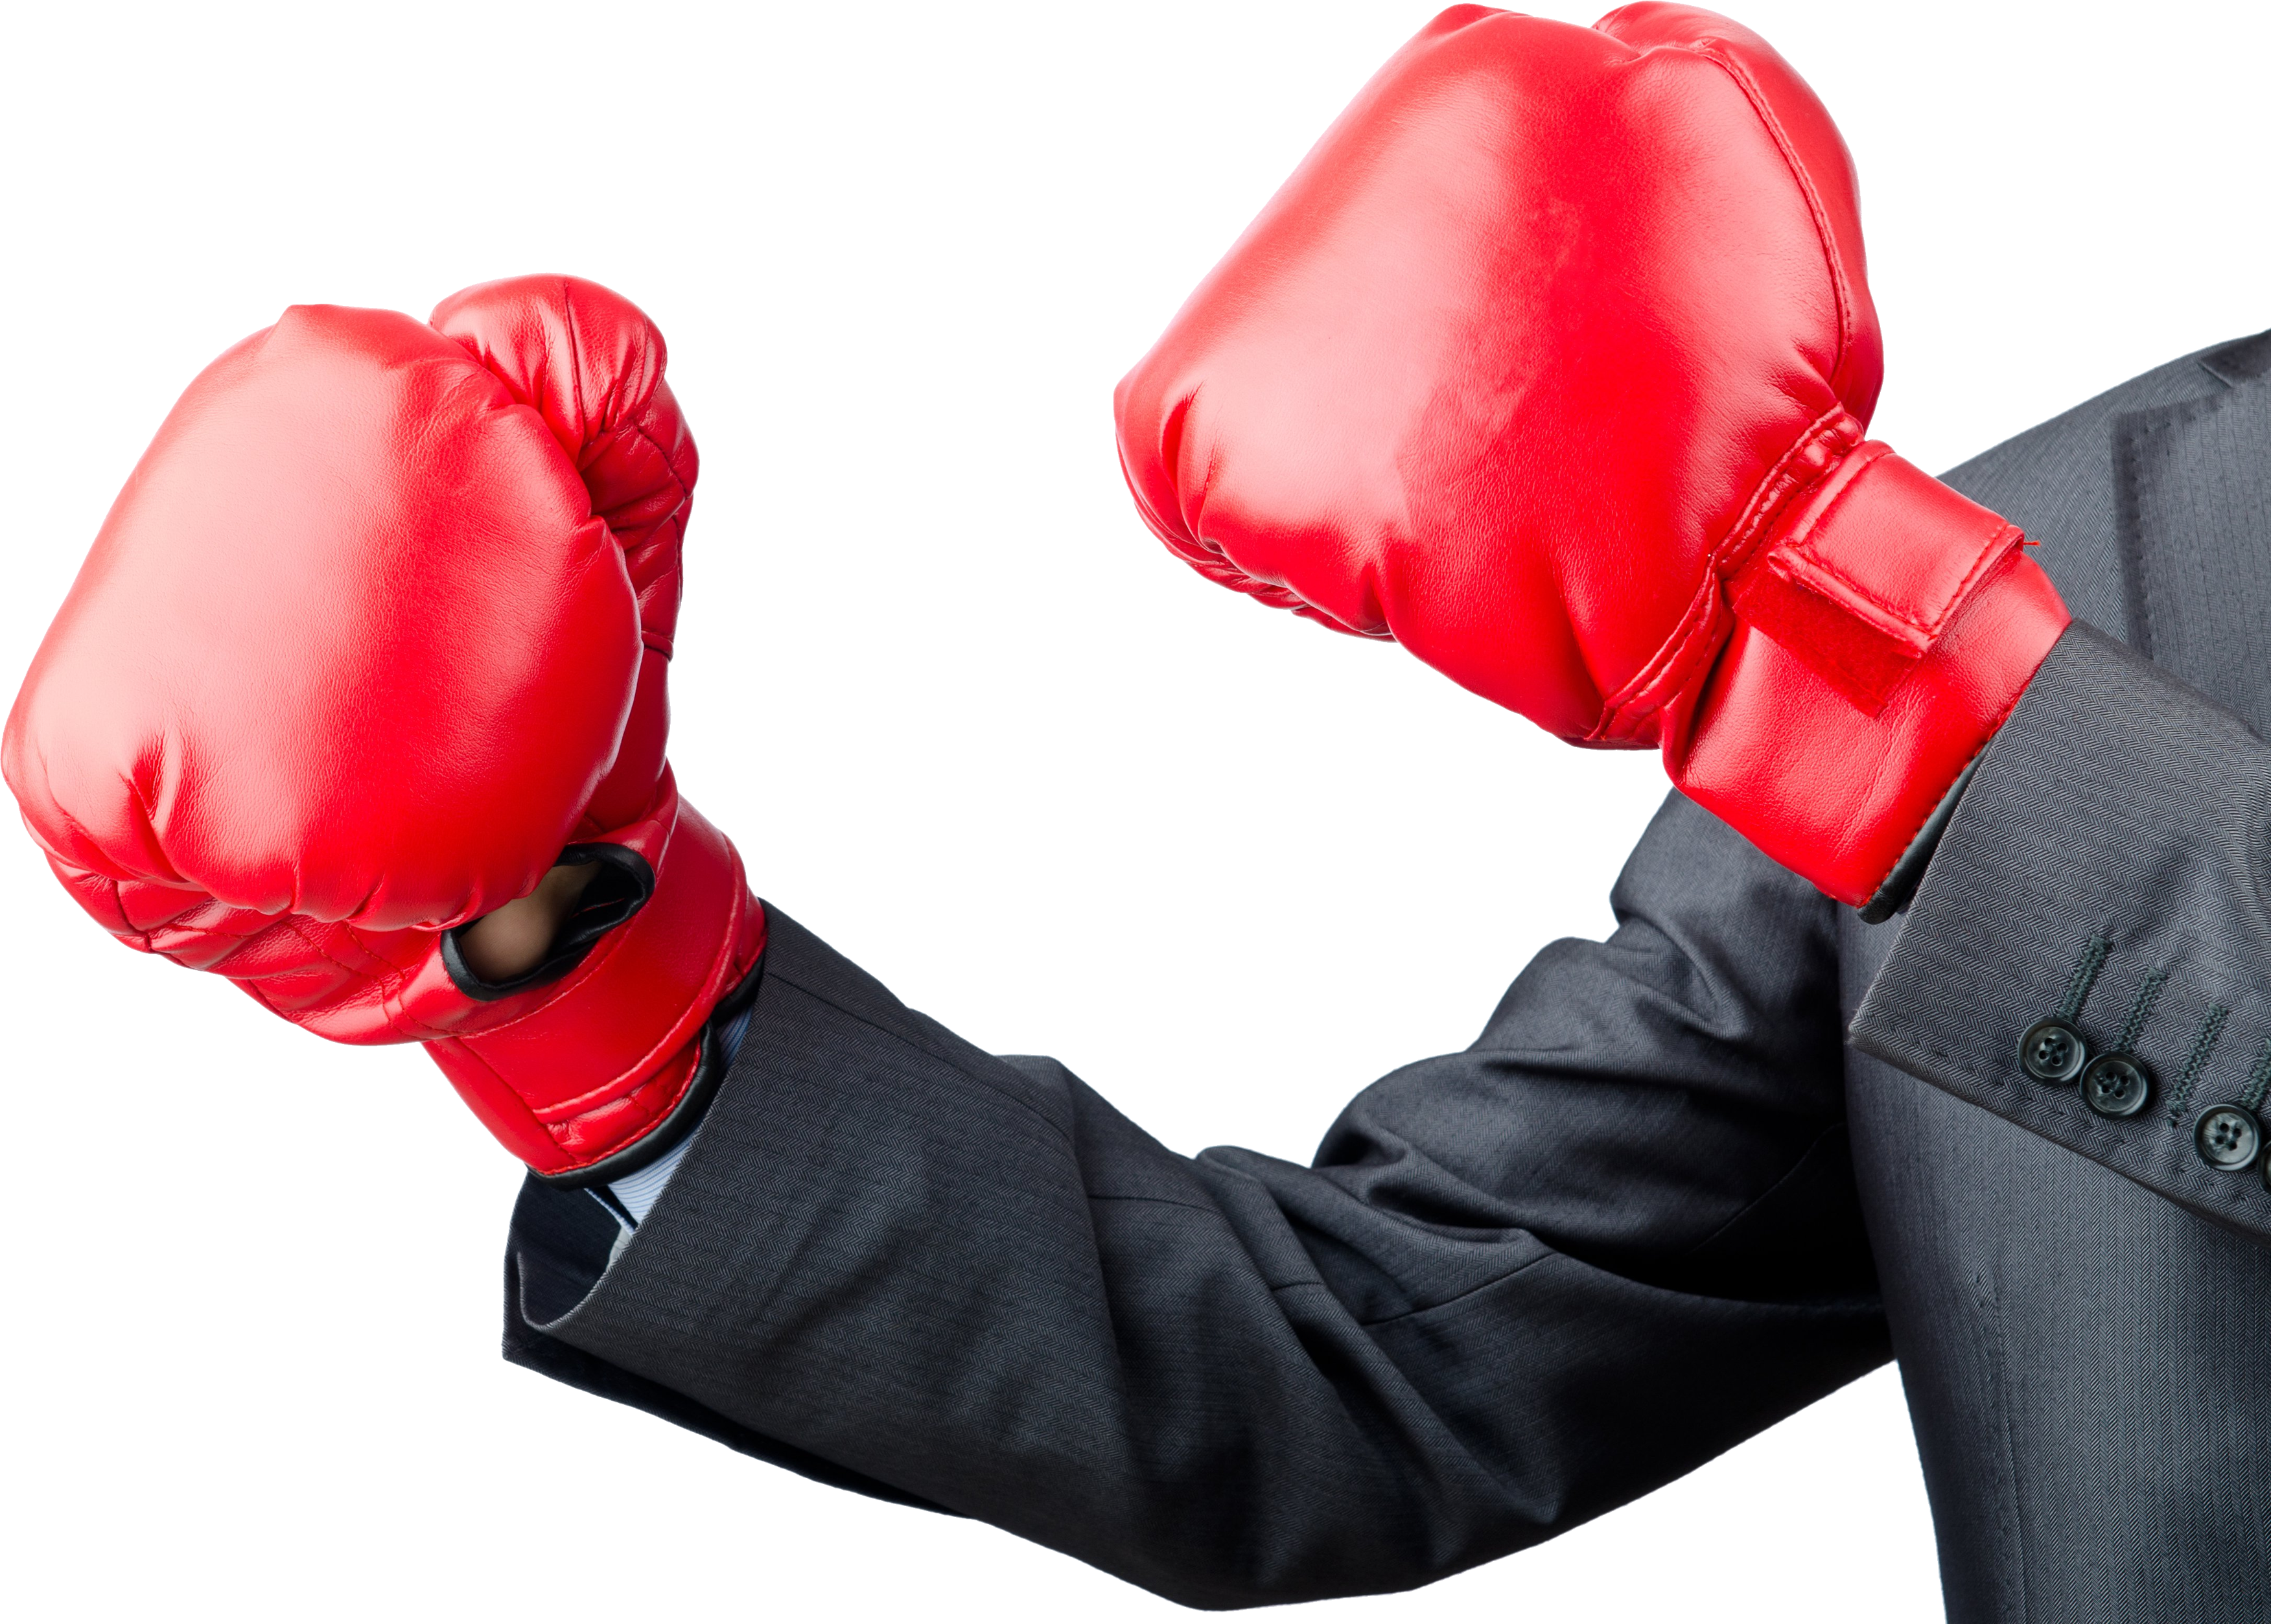 Boxing gloves PNG images free download, boxing PNG.